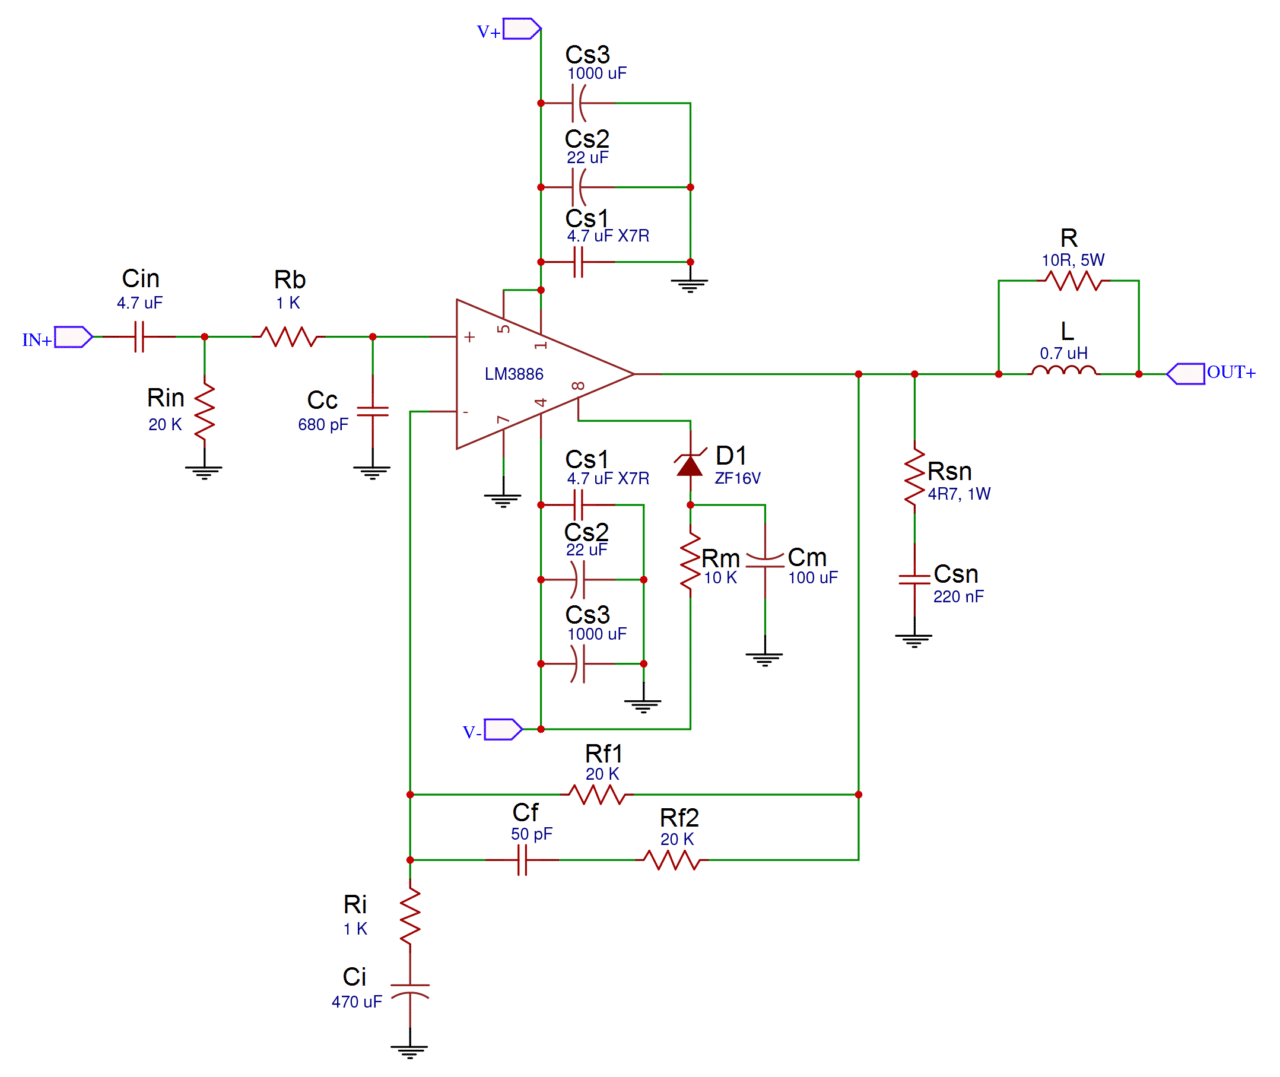 A Complete Guide To Design And Build Hi Fi Lm3886 Amplifier Wiring Diagram Provide Instruction So You Can Trace The Circuit Find Values For Components In Ill Be Using Schematic Below Its Basically Same As One Datasheet